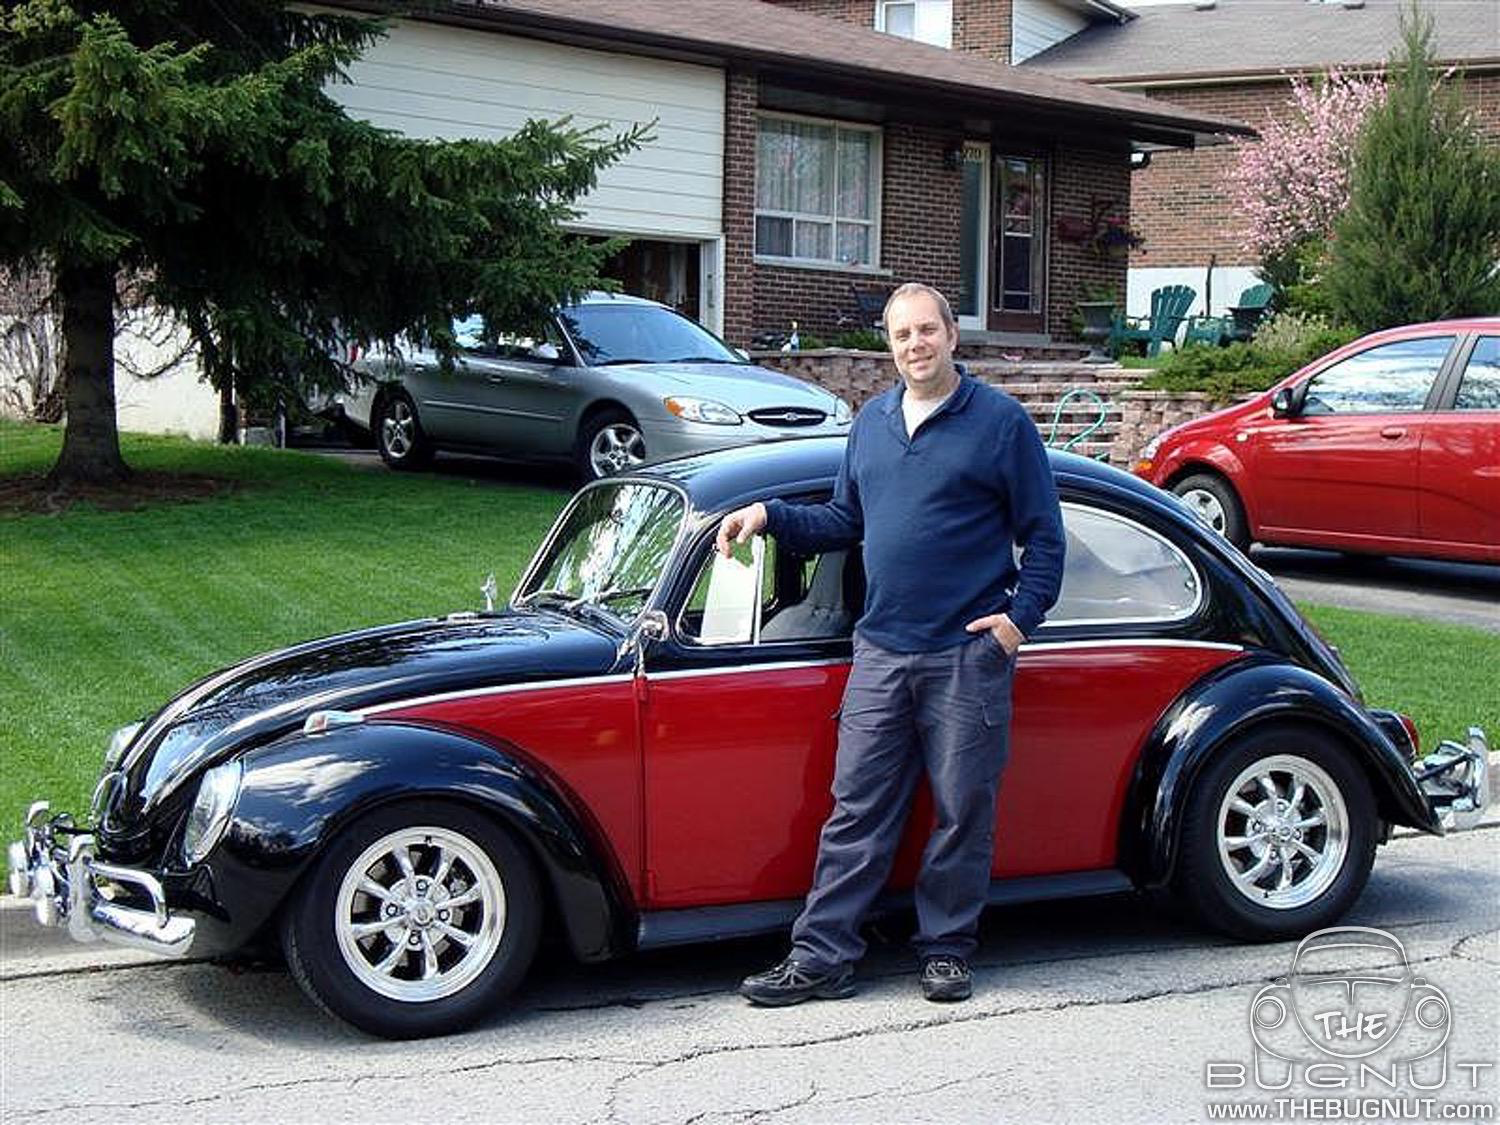 Gary Keeping's 1971 Super Beetle